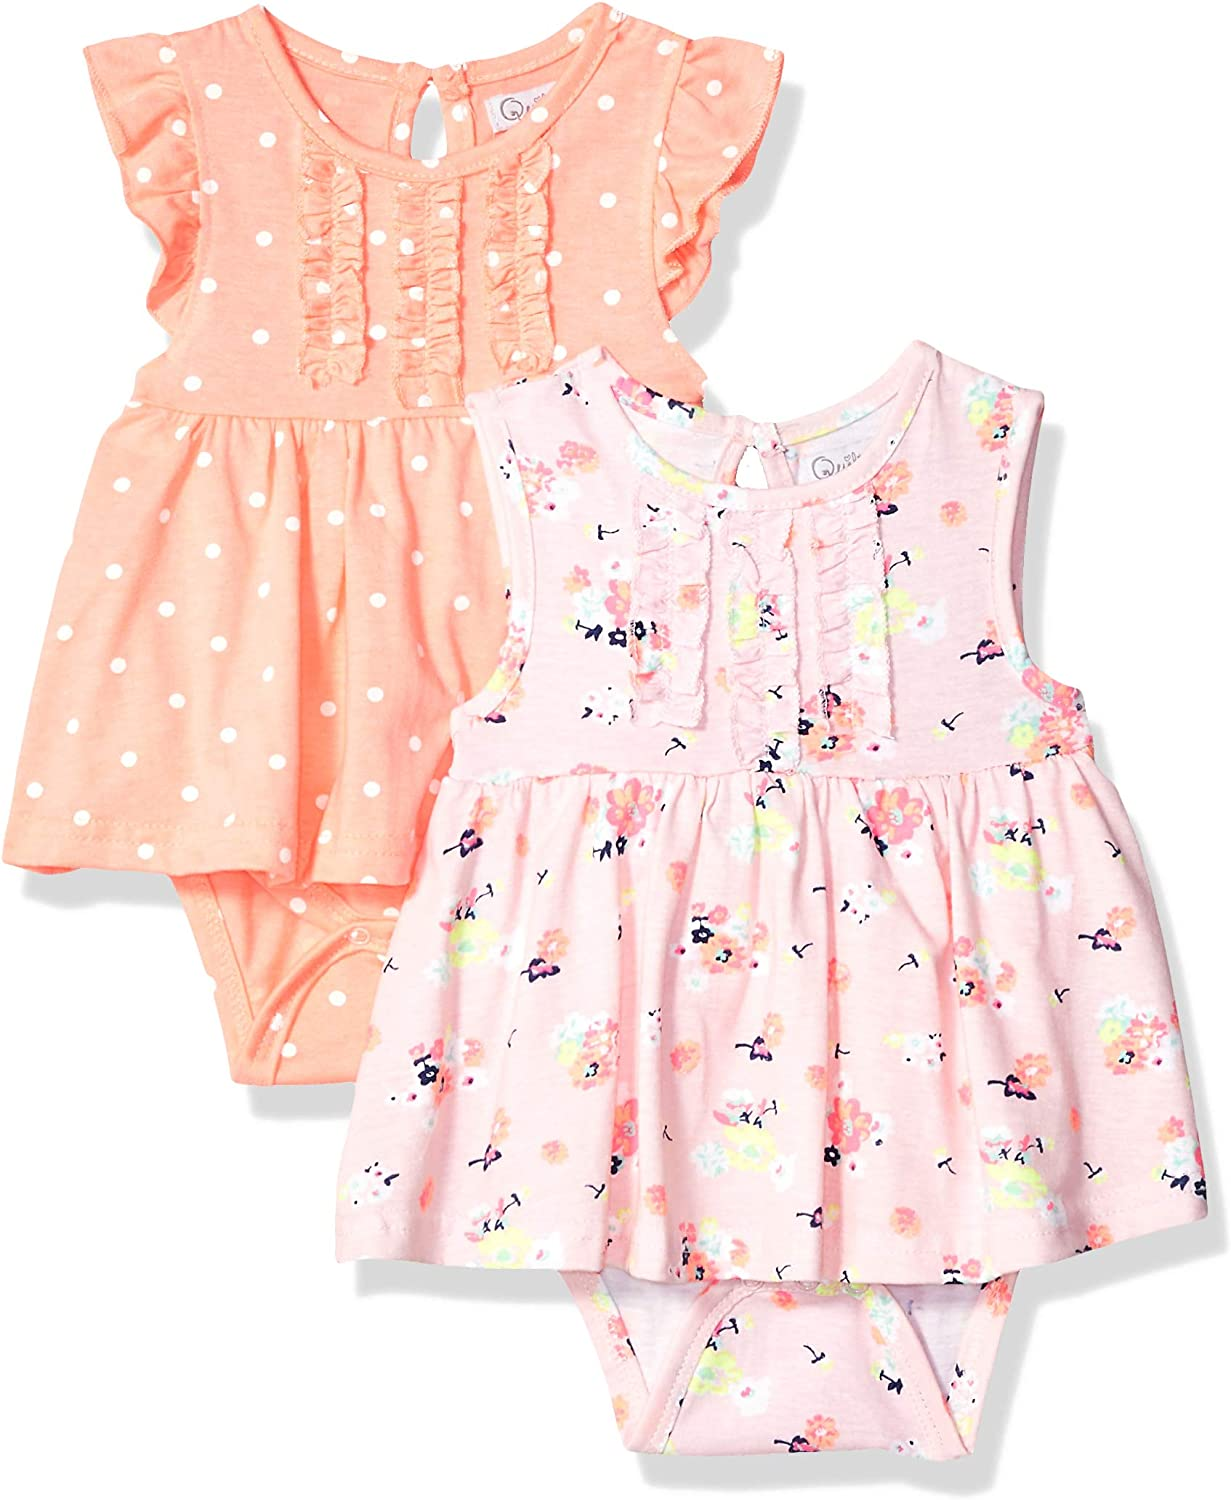 Quiltex Girls' Toddler Flower Child 2 Pack Creeper Dress with All Over Print